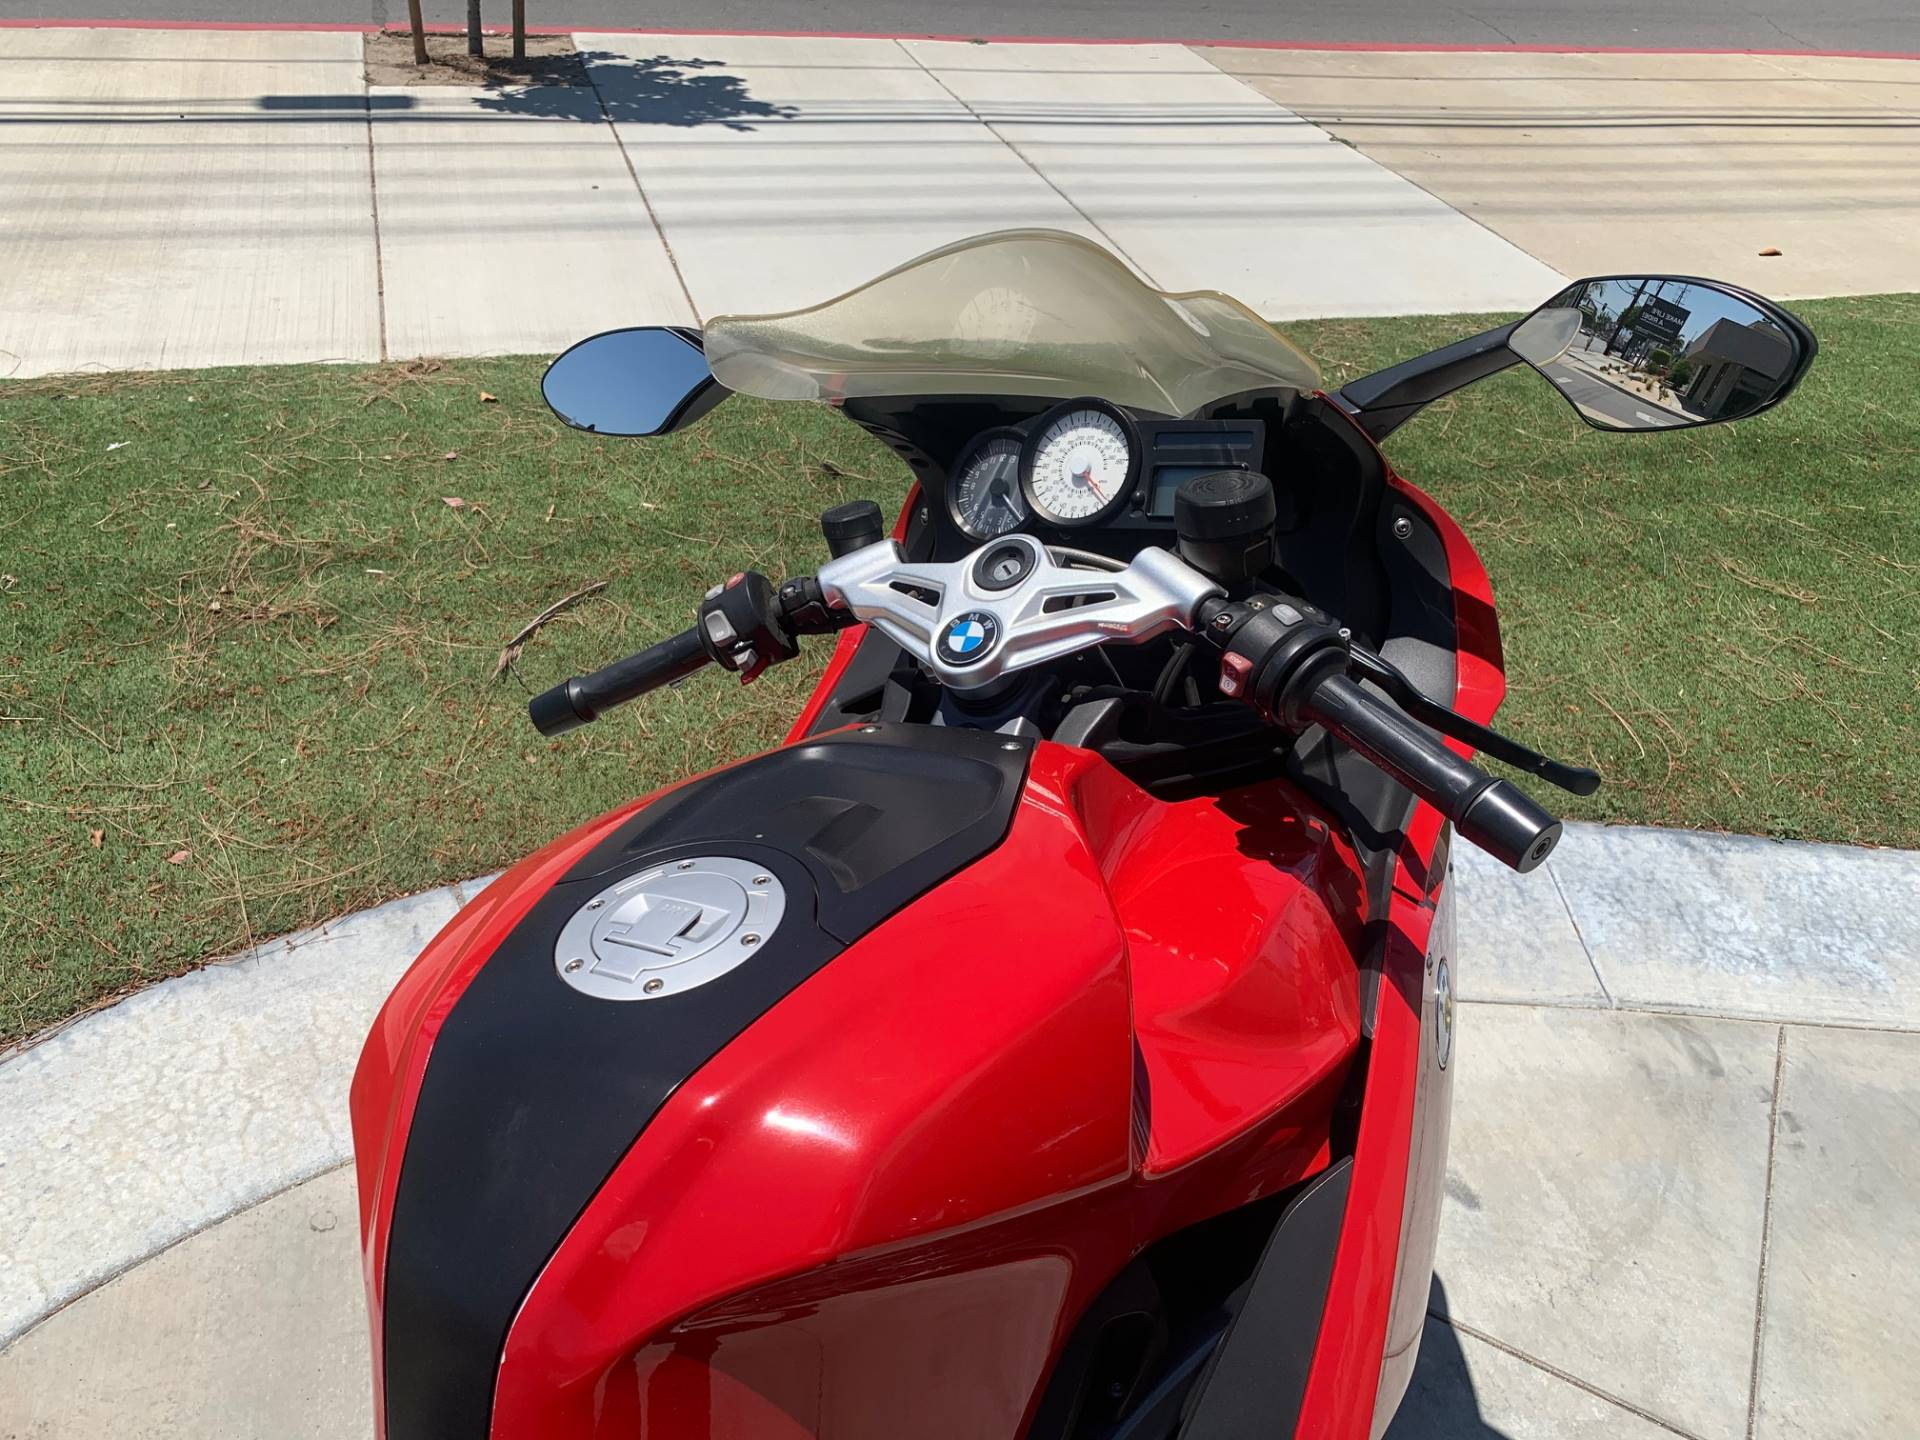 2011 BMW K 1300 S in Orange, California - Photo 5